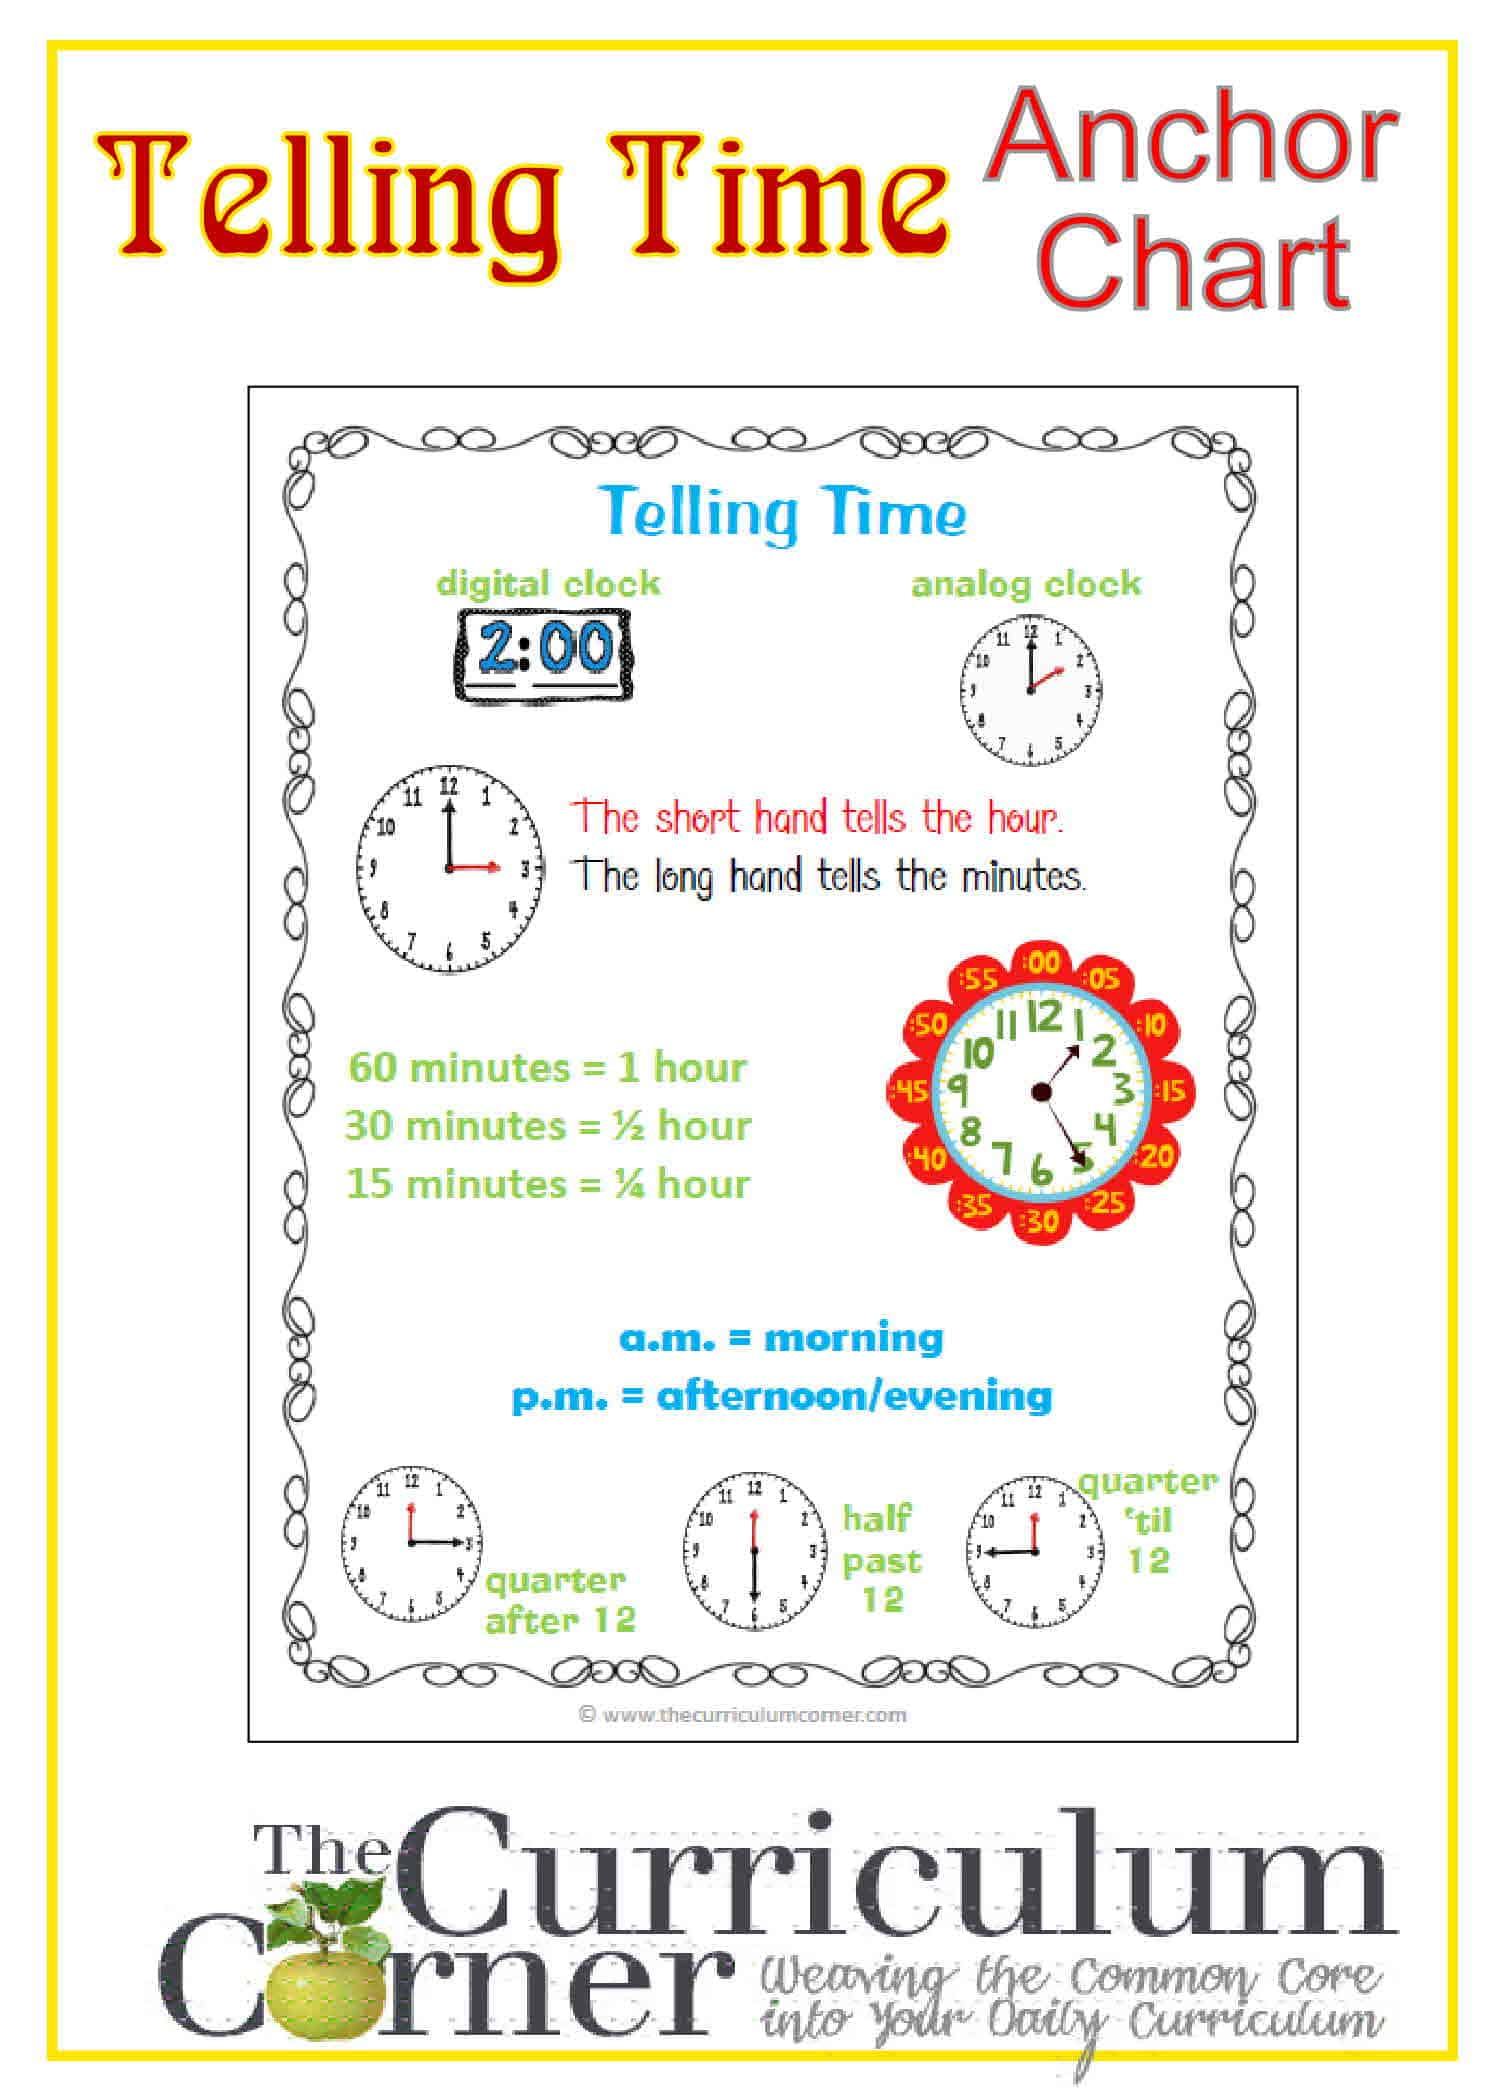 Telling Time Anchor Chart - The Curriculum Corner 123 [ 2100 x 1500 Pixel ]